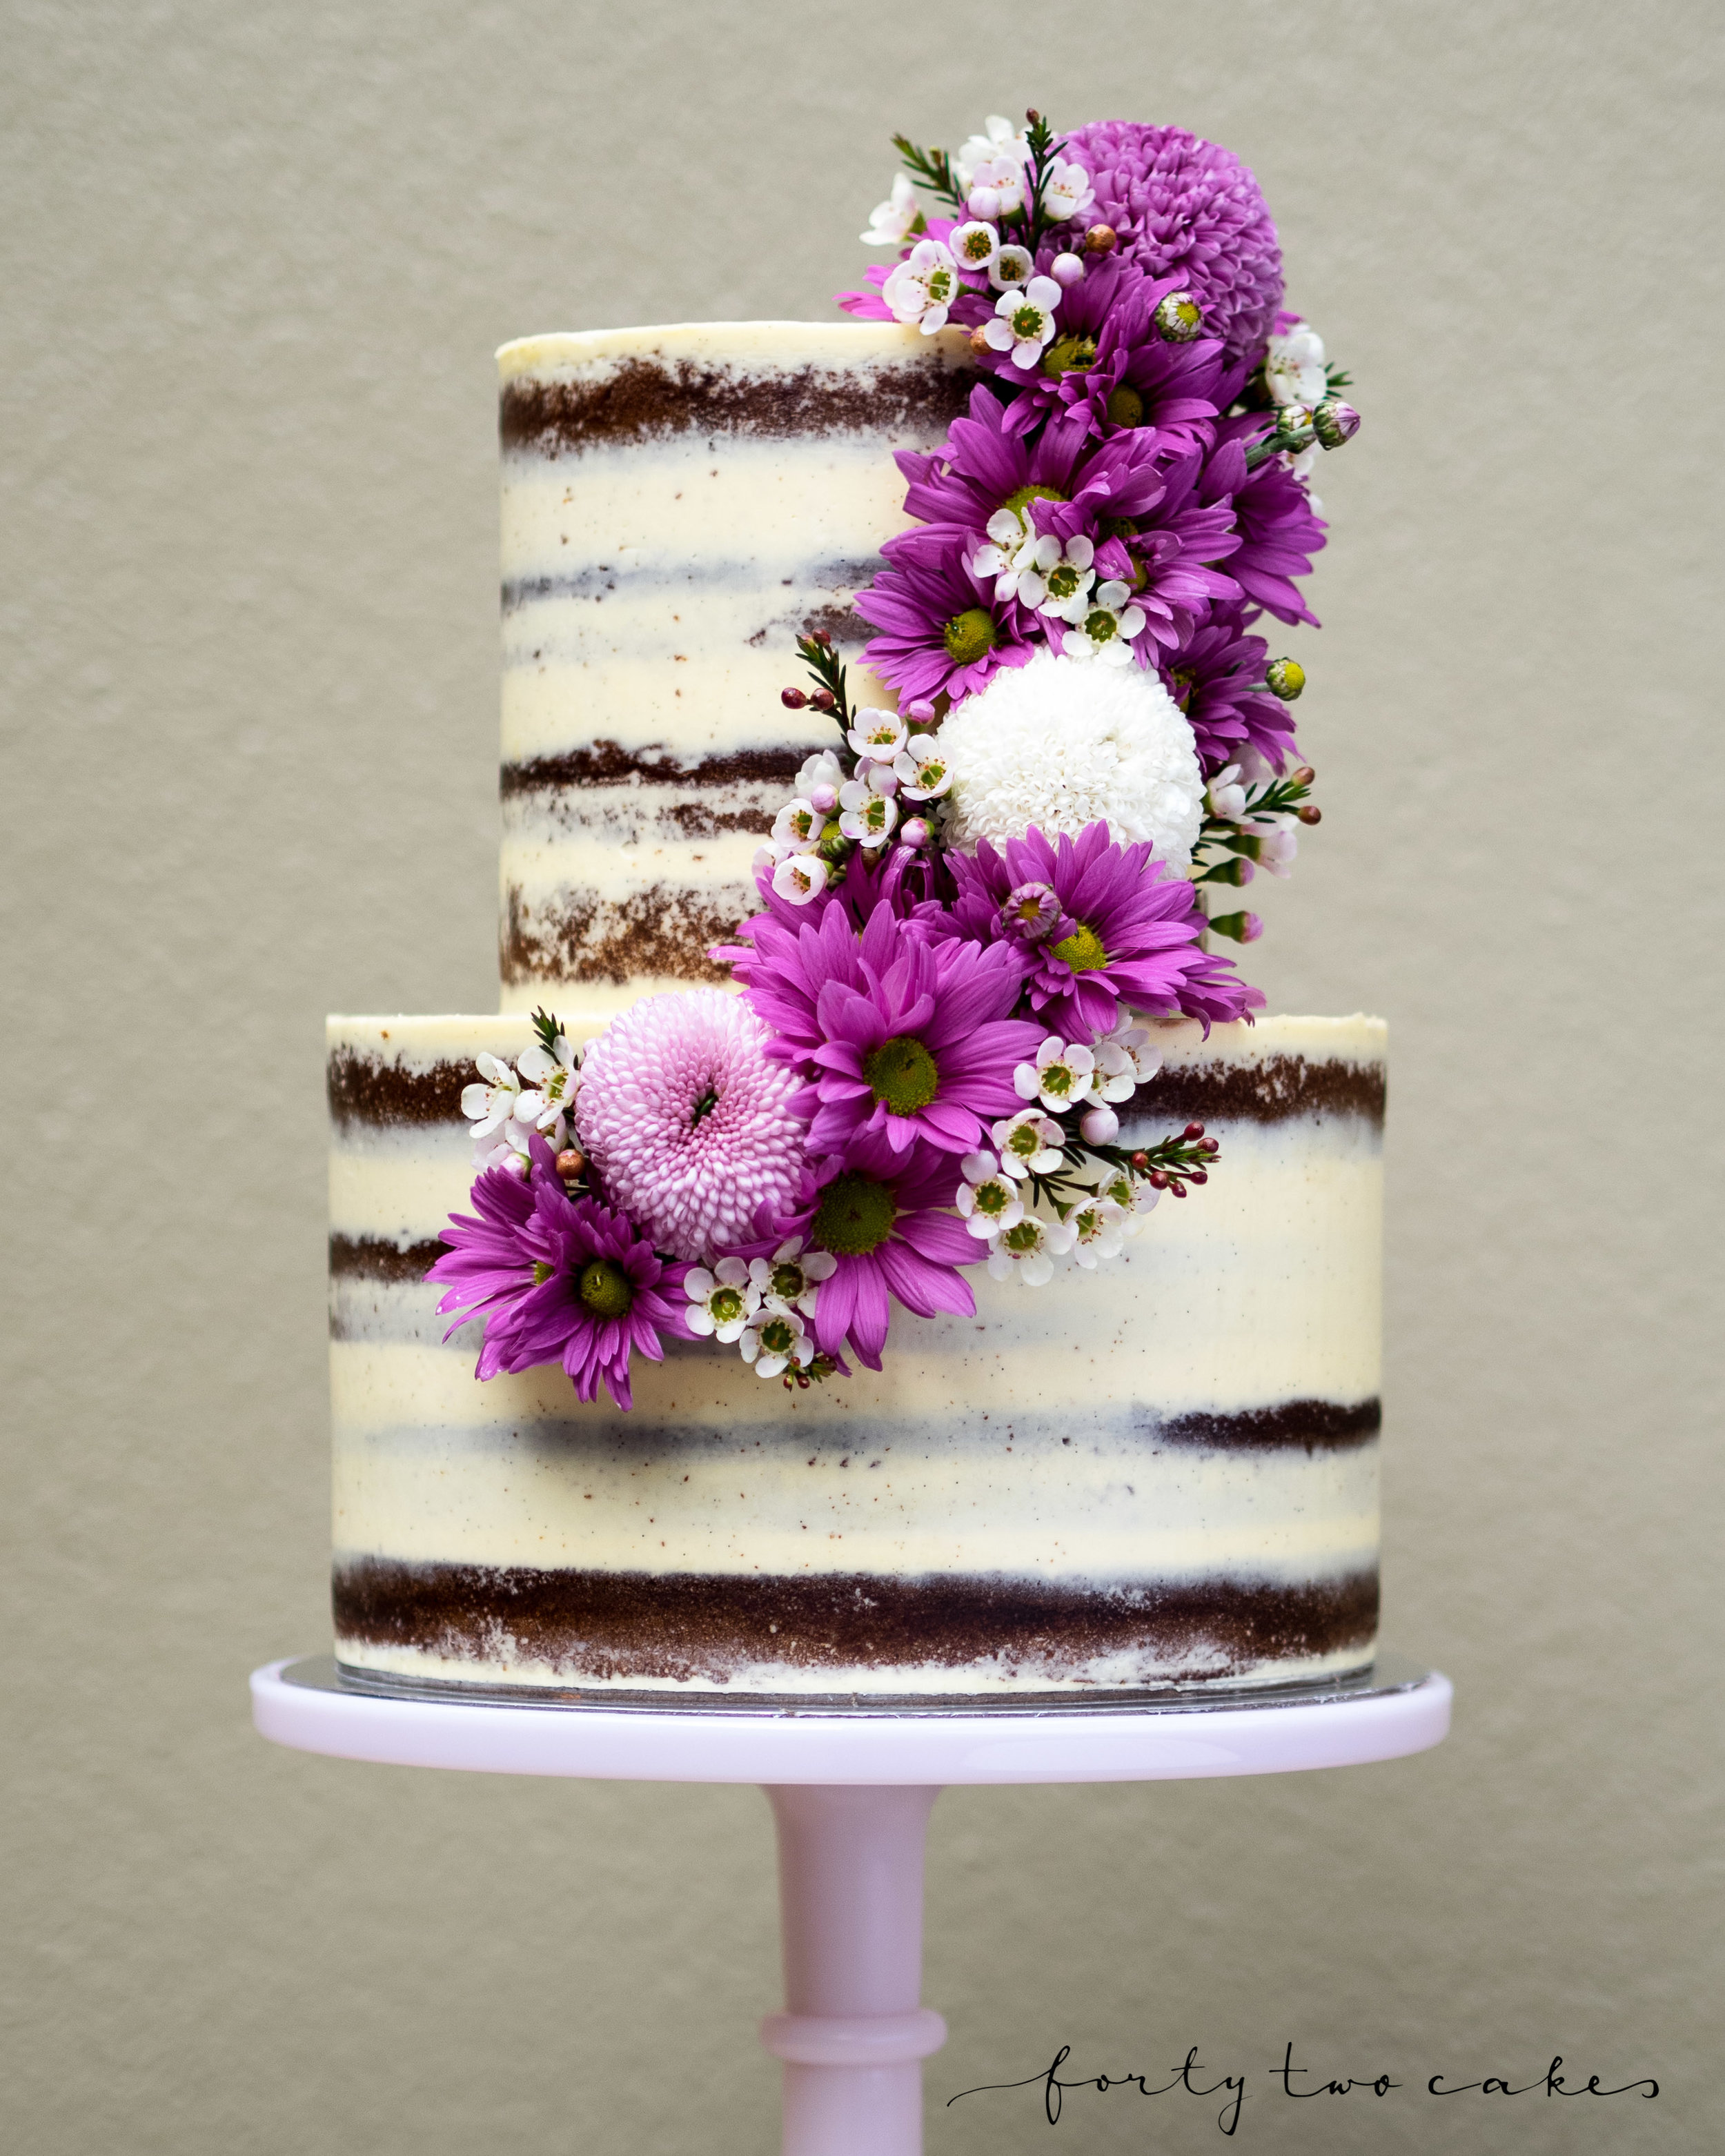 Forty-Two Cakes - Seminaked-12.jpg